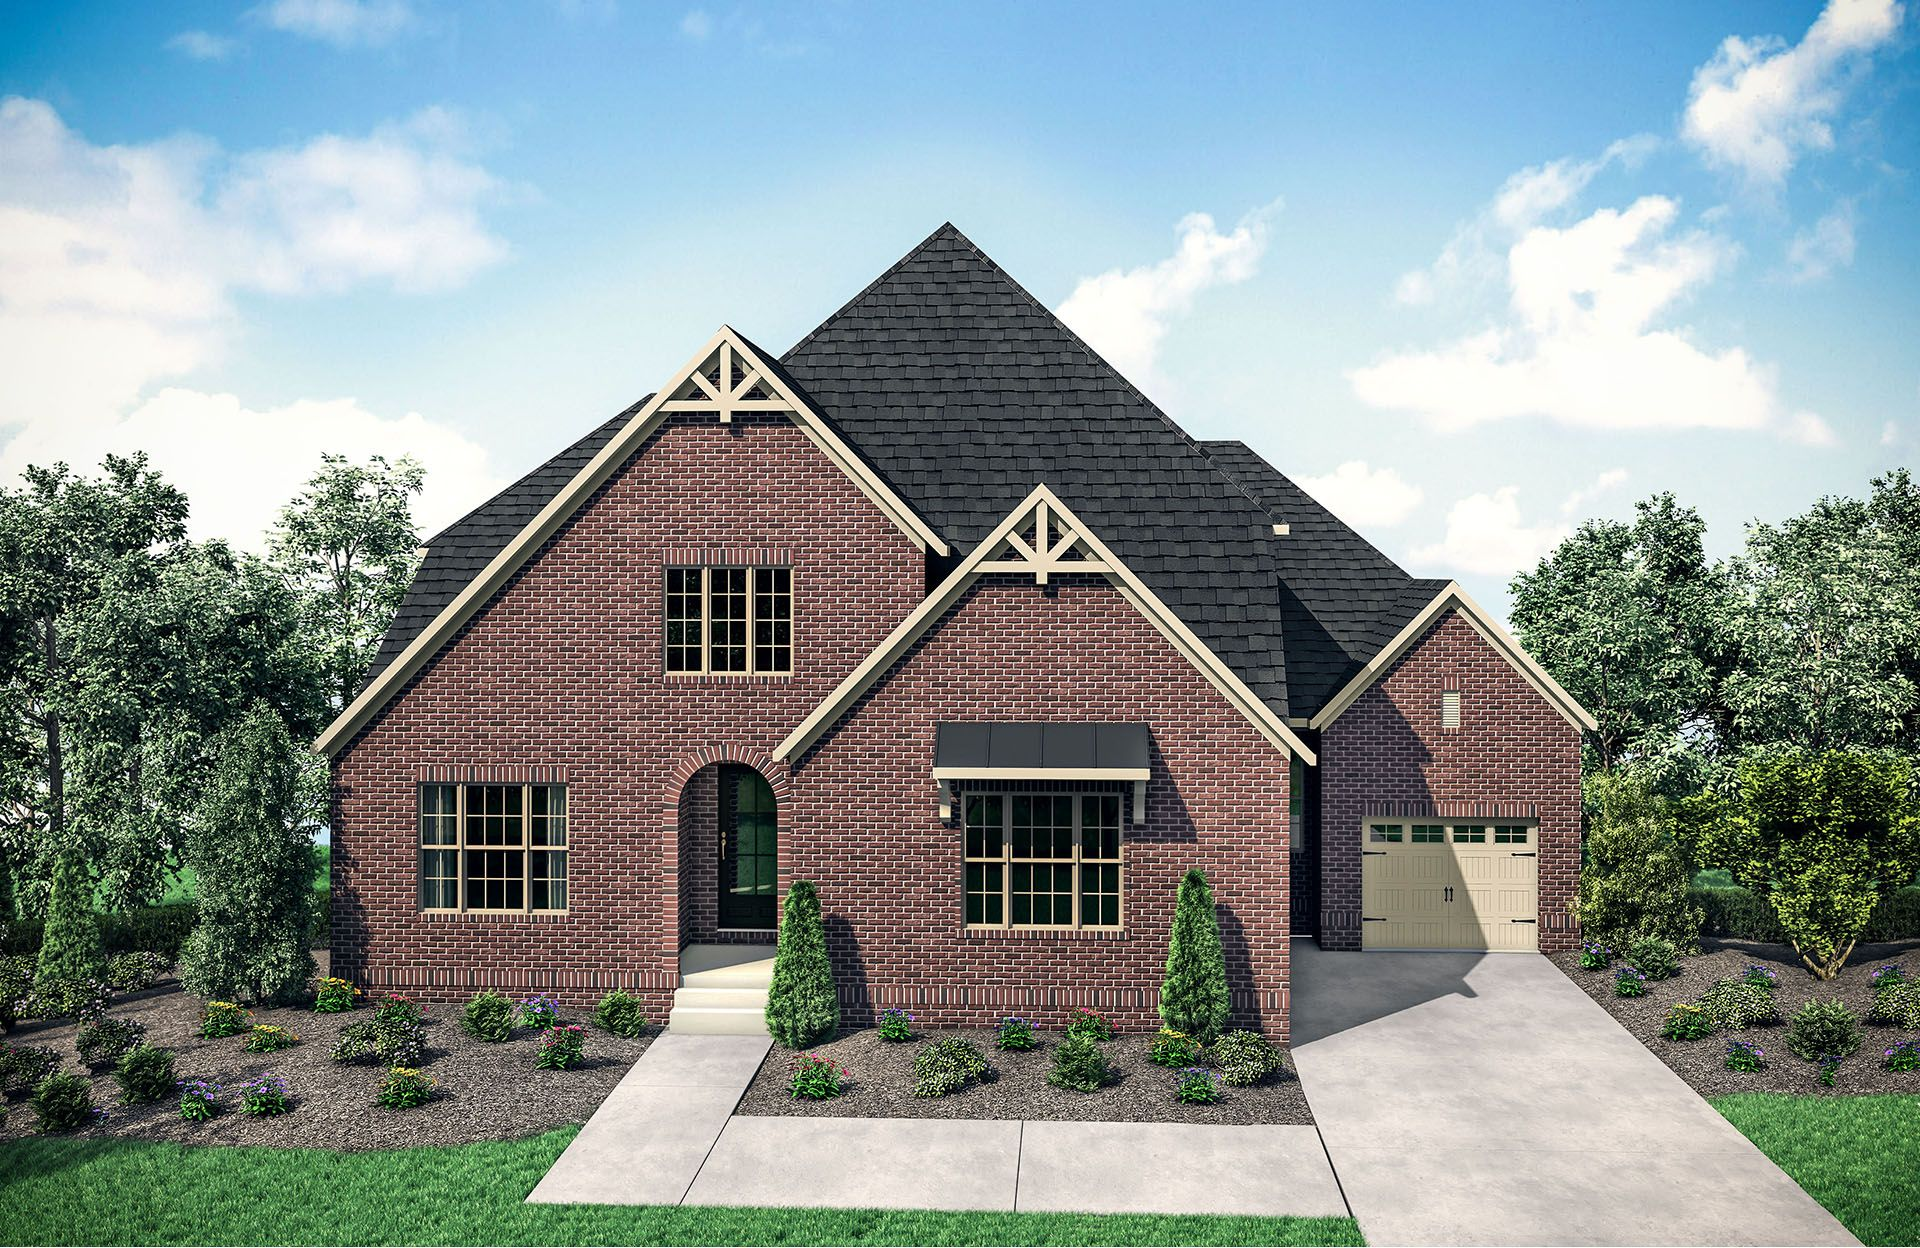 Single Family for Sale at Foxland Harbor - Oakdale Foxland Blvd. Gallatin, Tennessee 37066 United States